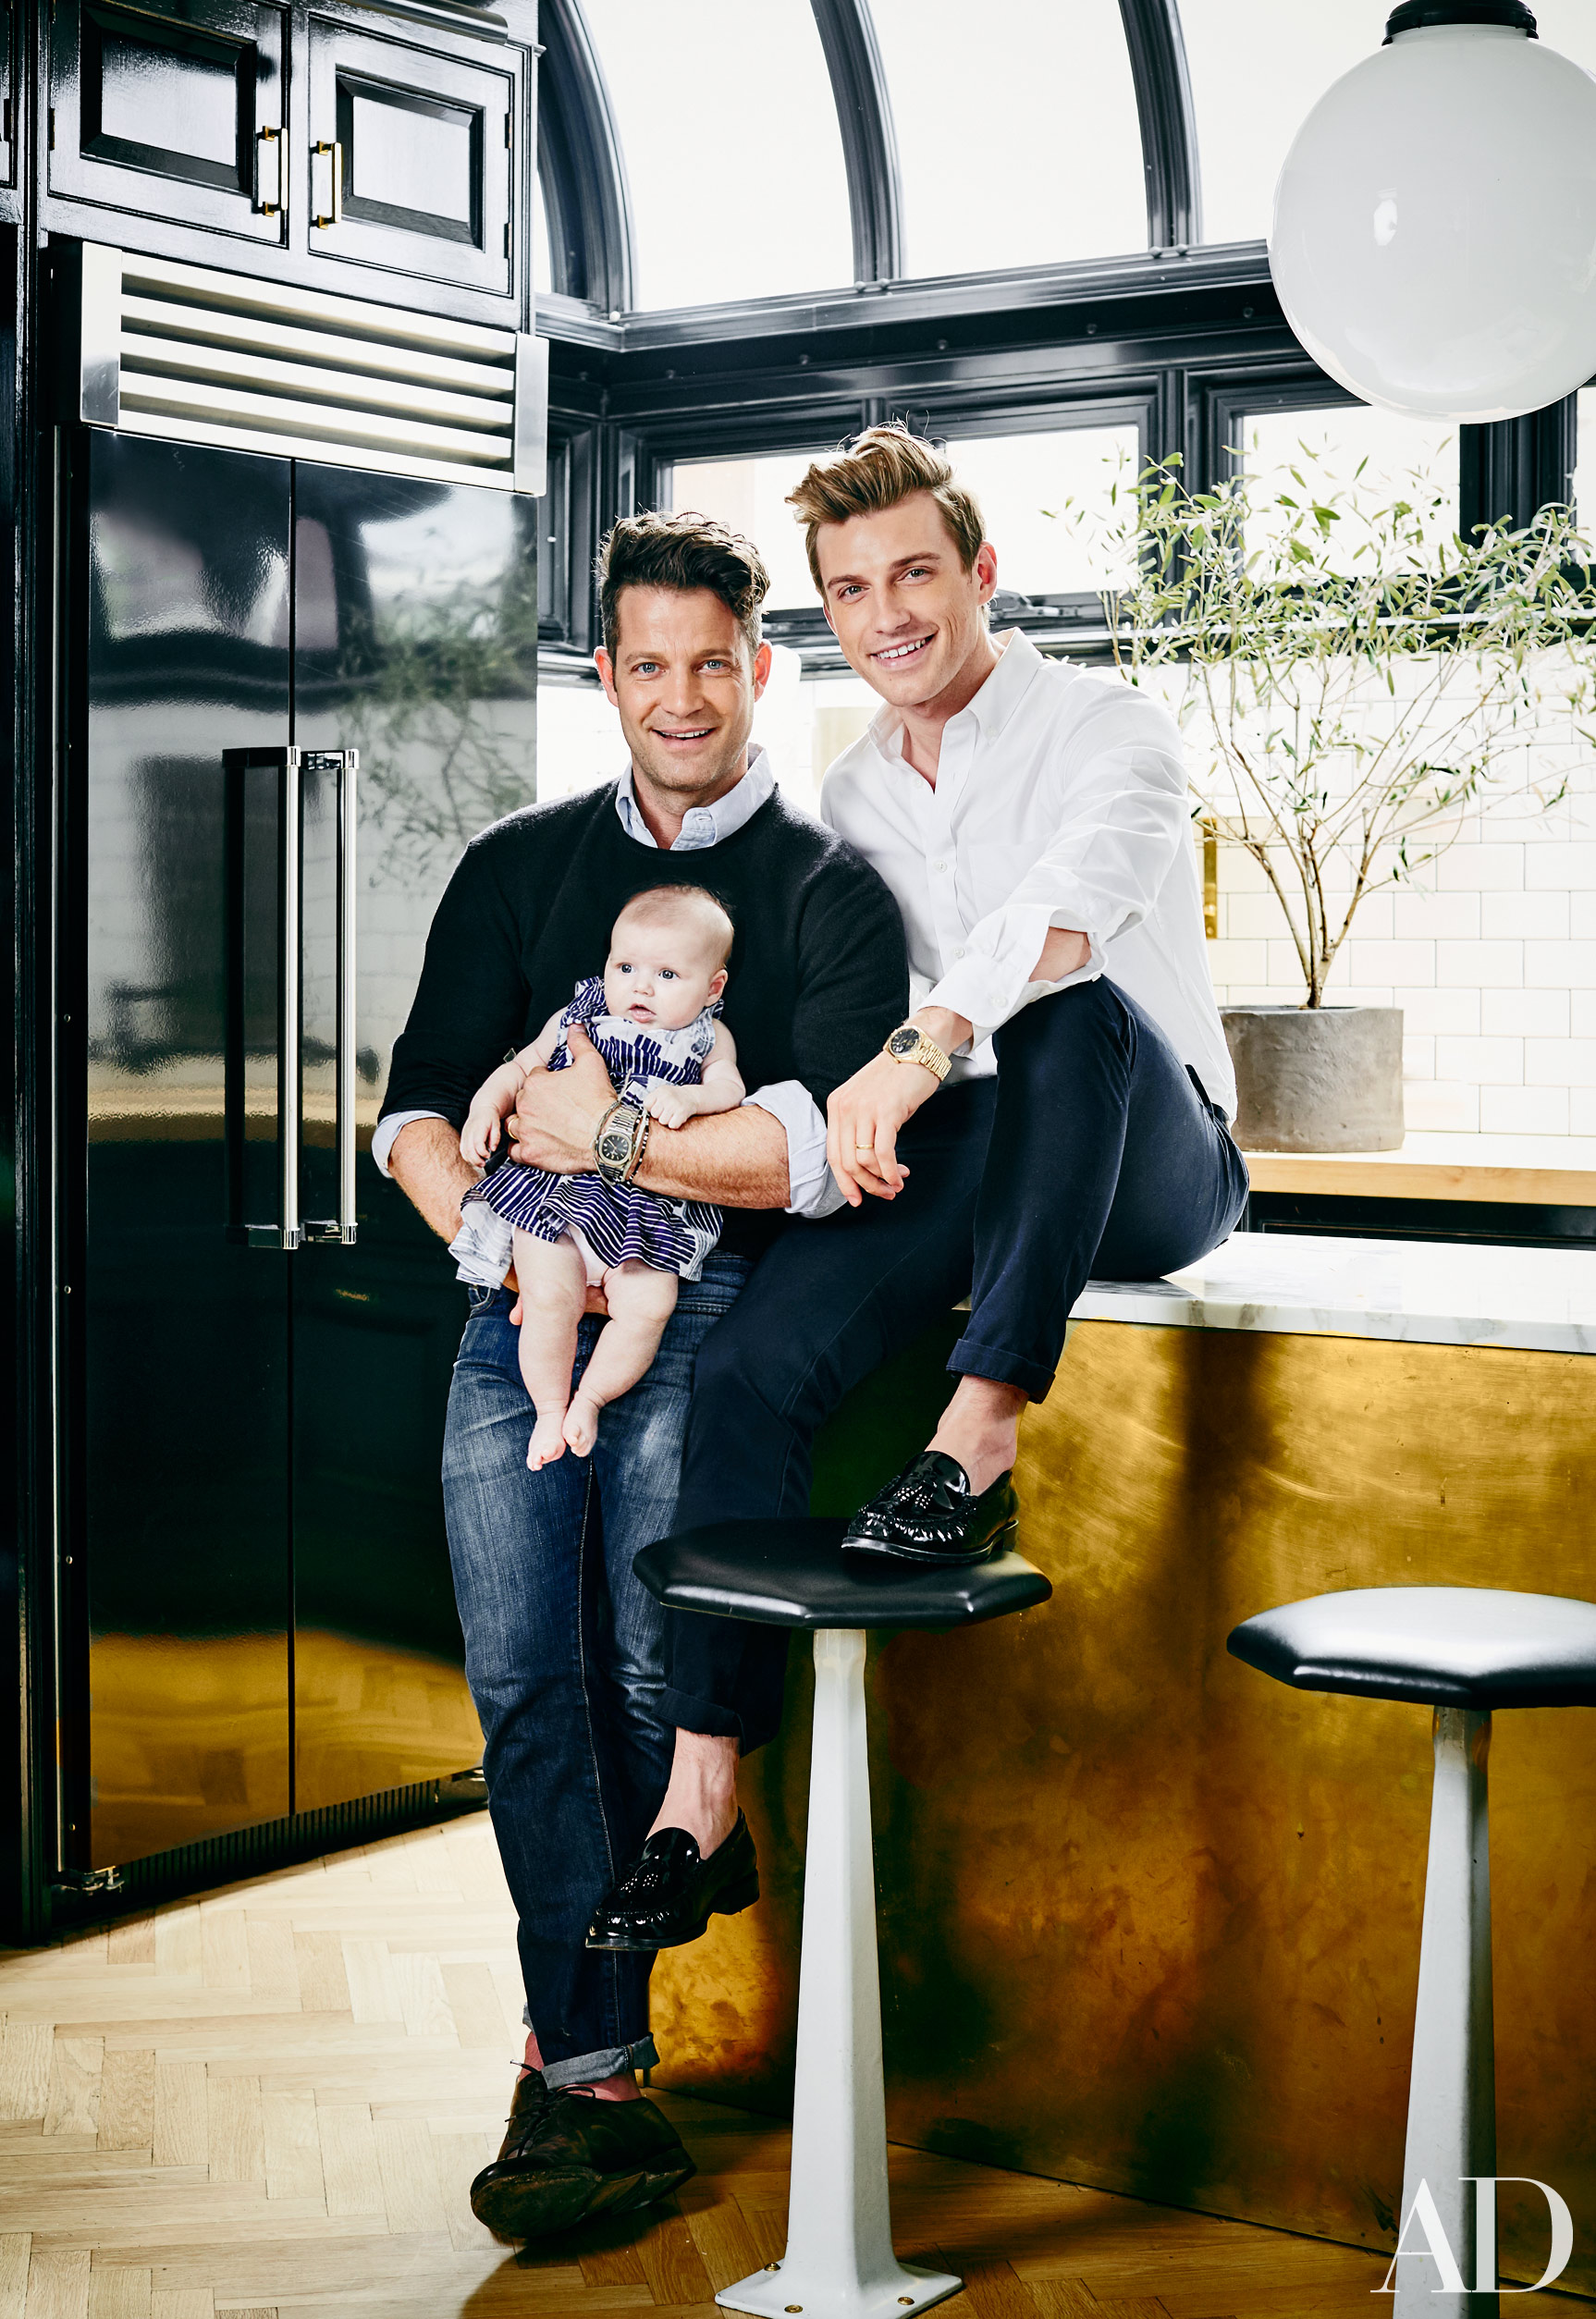 Nate Berkus Family Portrait with Baby Daughter Poppy